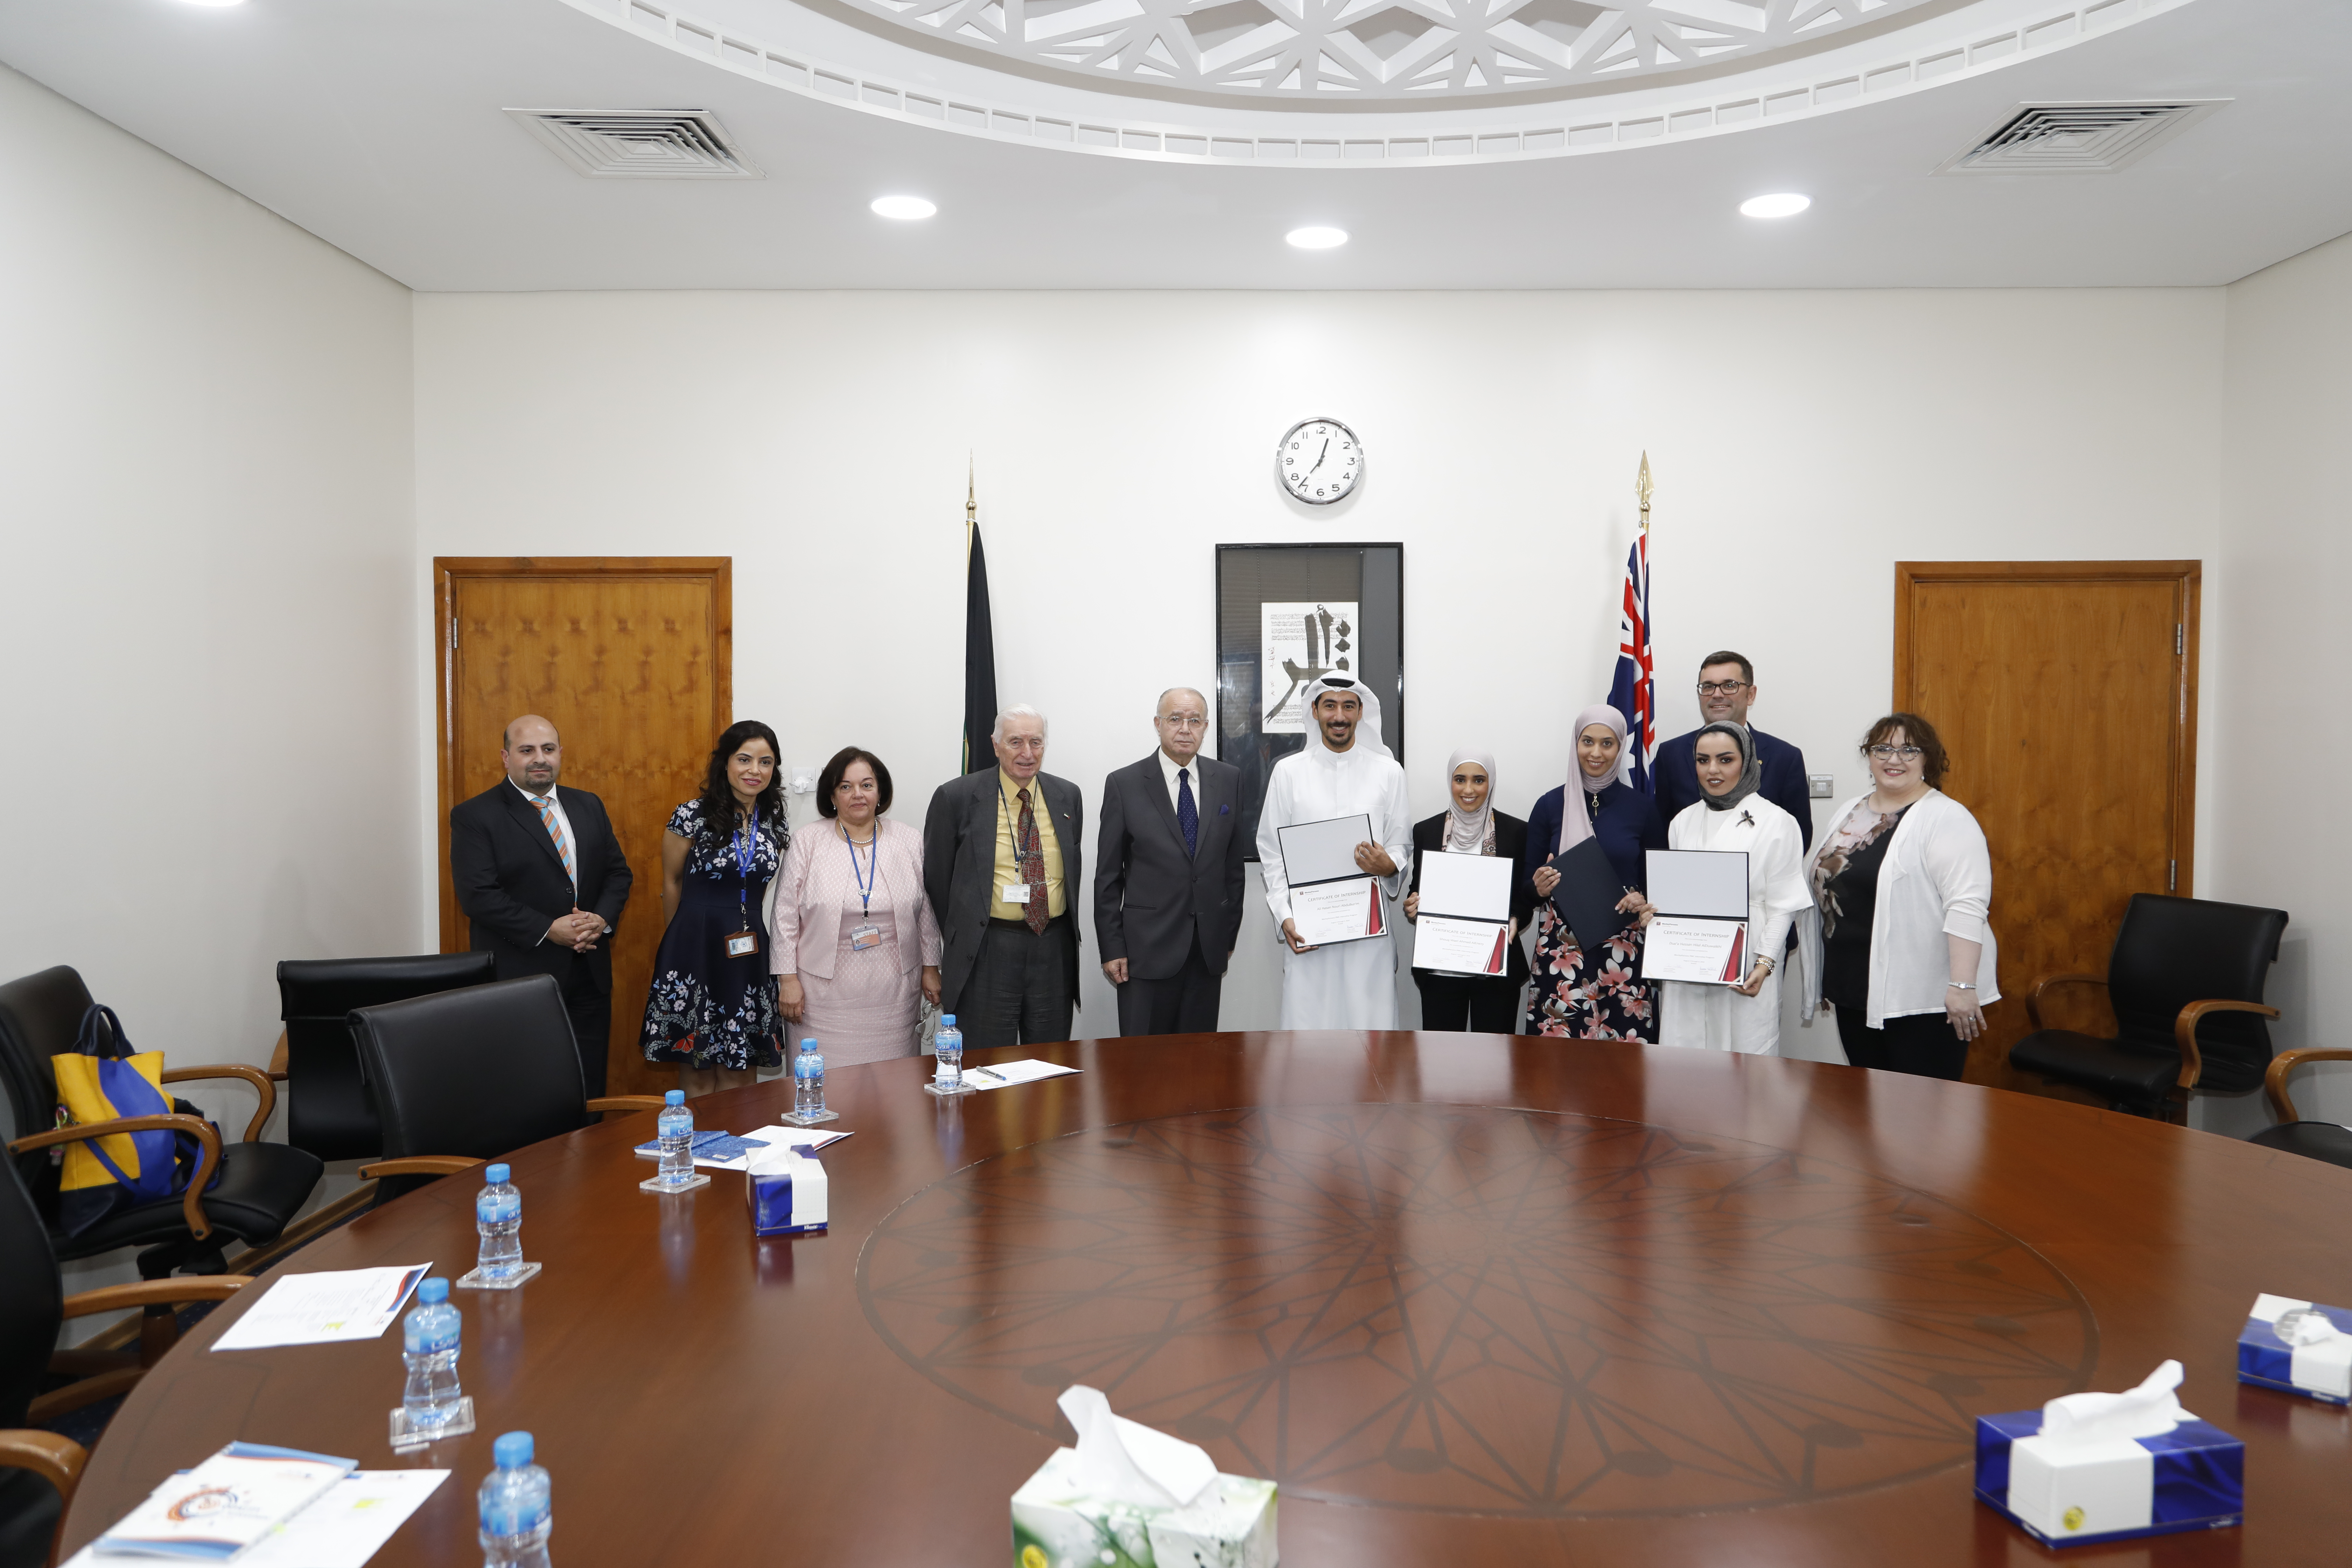 Australian Ambassador recognizes ACK students for completion of WorleyParsons and KOC Internship